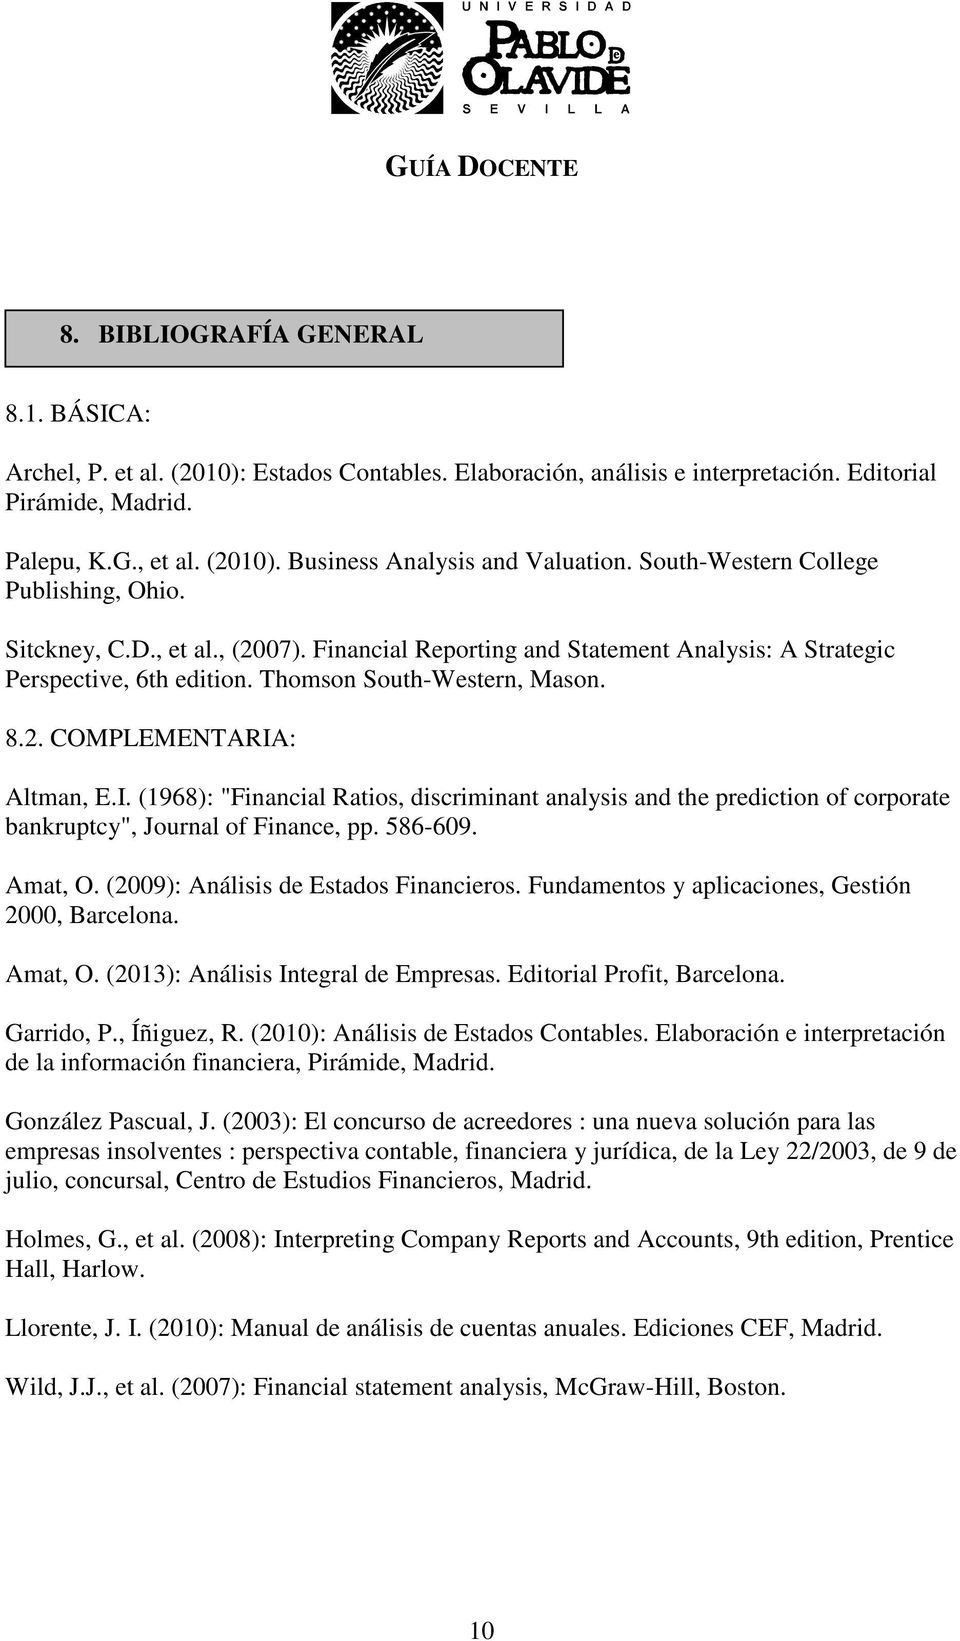 "I. (1968): ""Financial Ratios, discriminant analysis and the prediction of corporate bankruptcy"", Journal of Finance, pp. 586-609. Amat, O. (2009): Análisis de Estados Financieros."